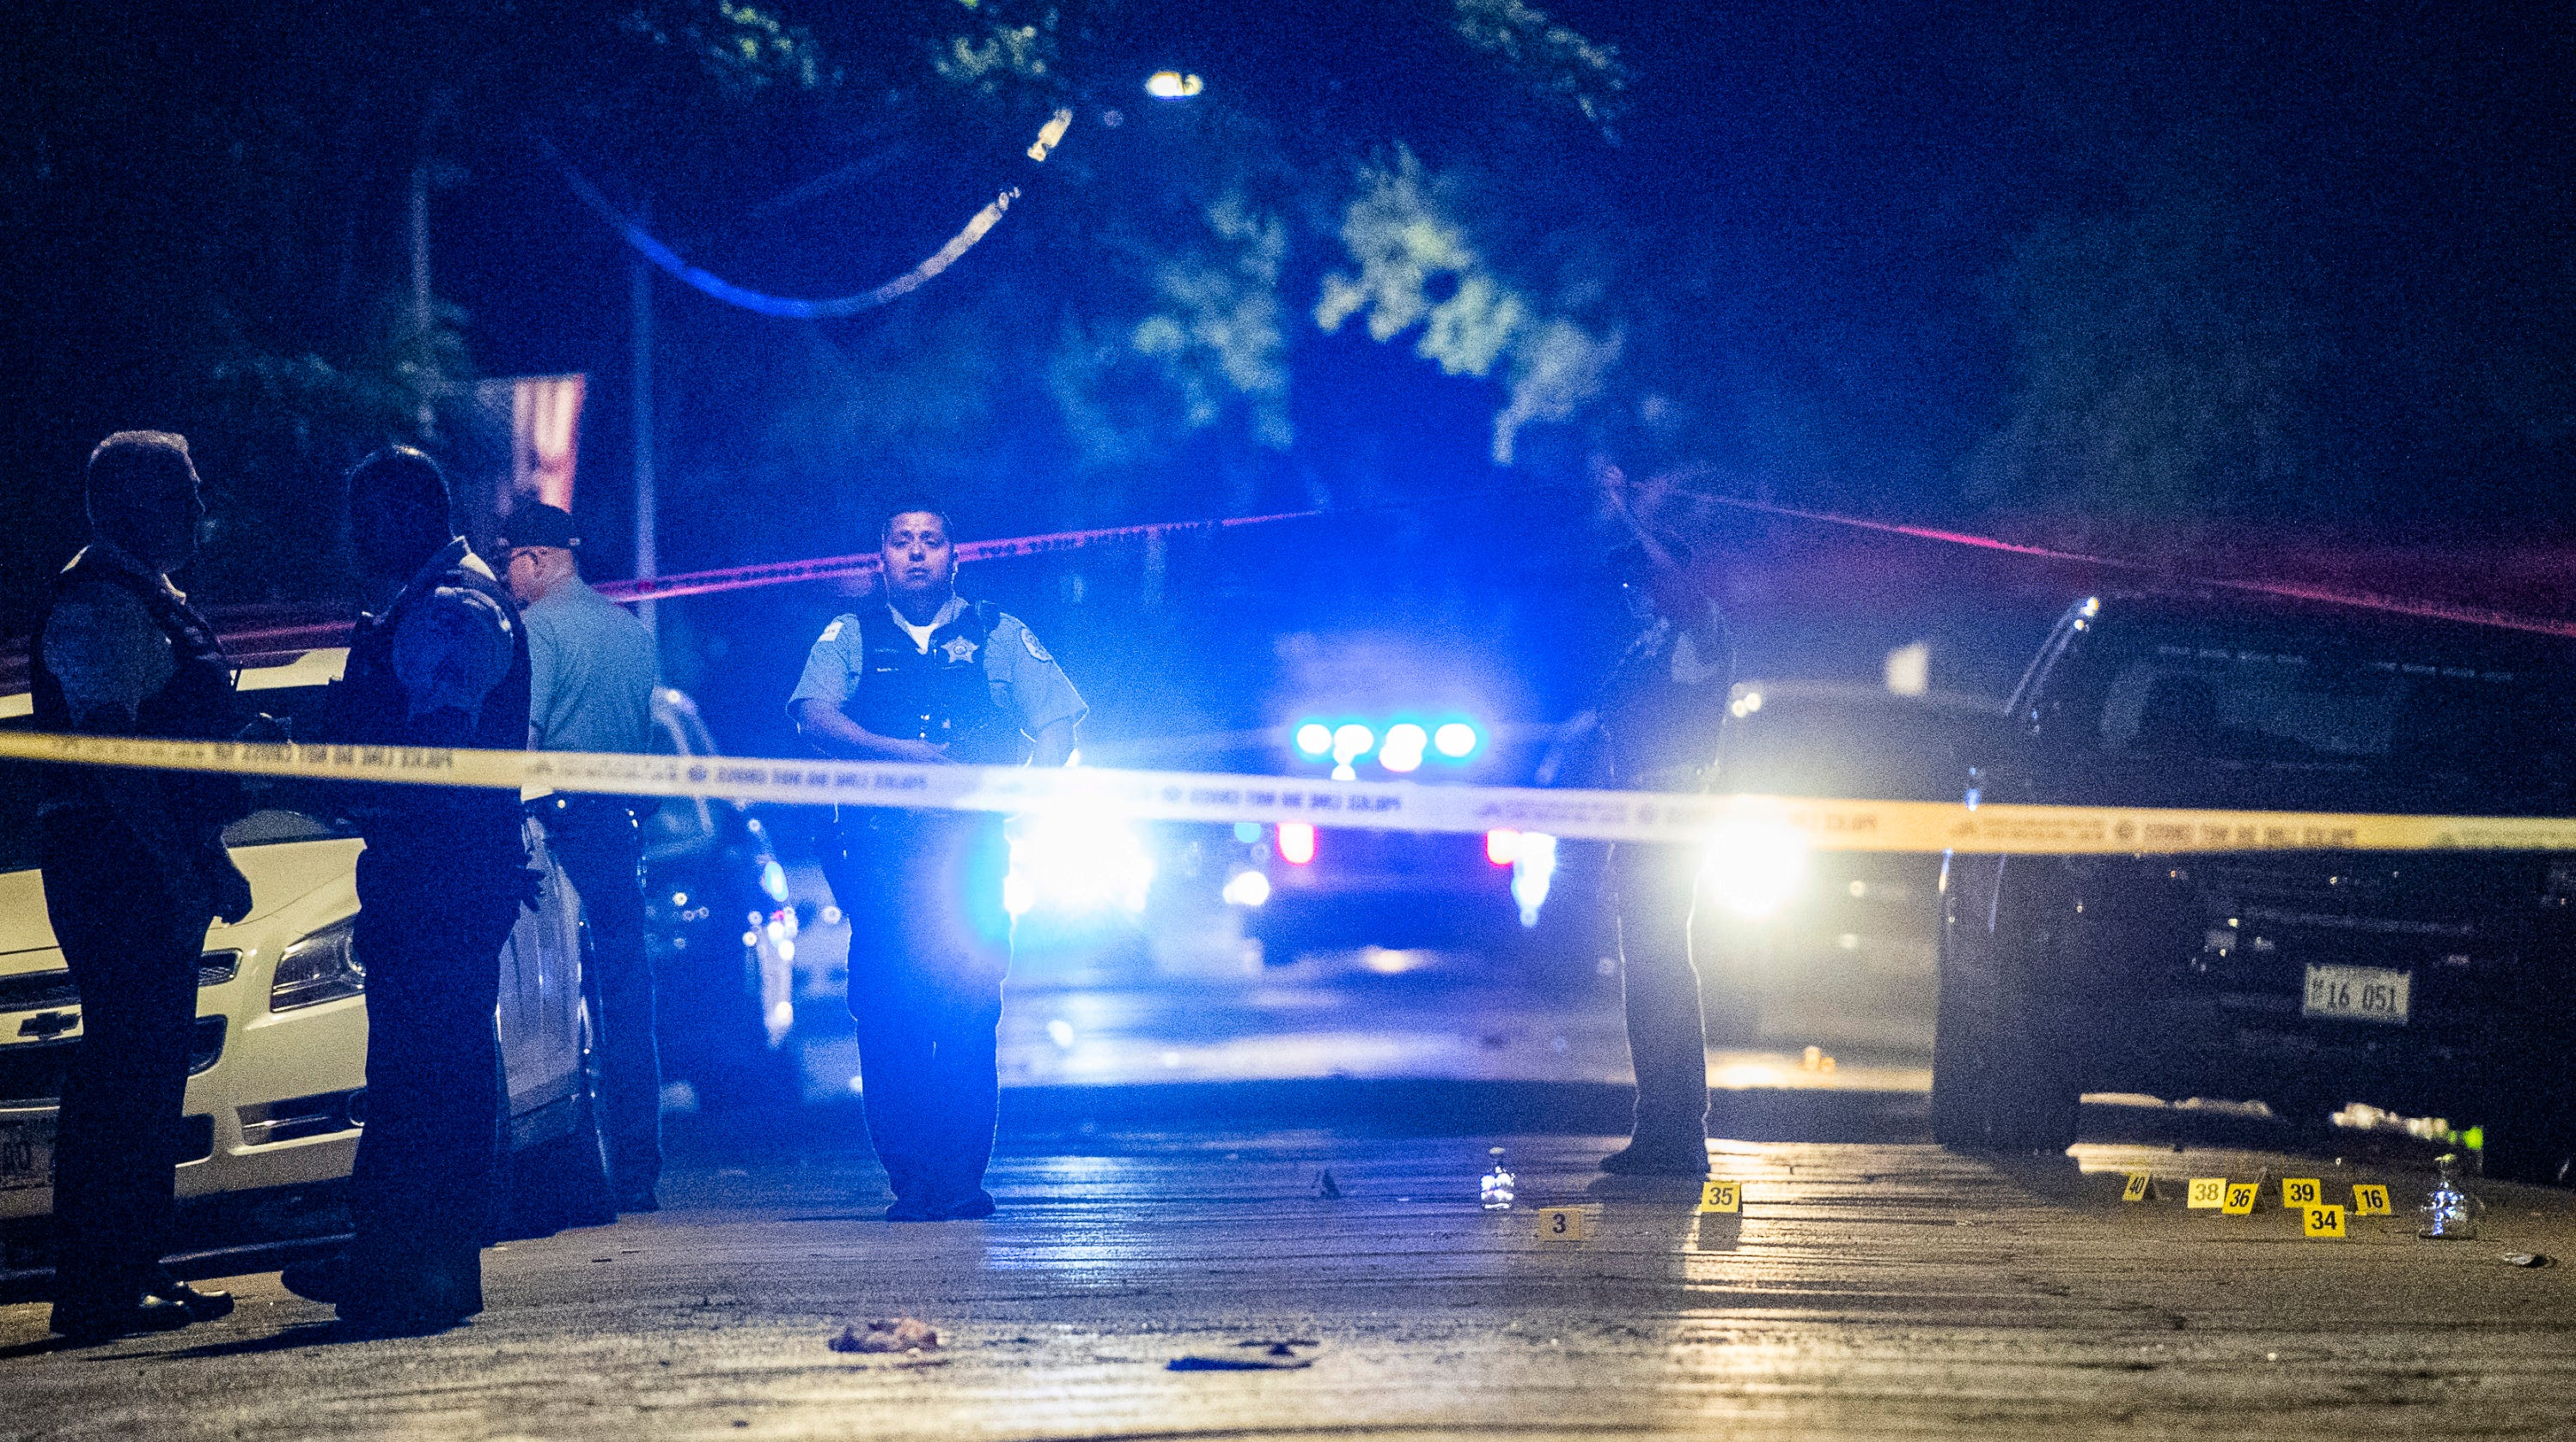 Unsolved murders: Chicago, other big cities struggle; murder rate a 'national disaster'